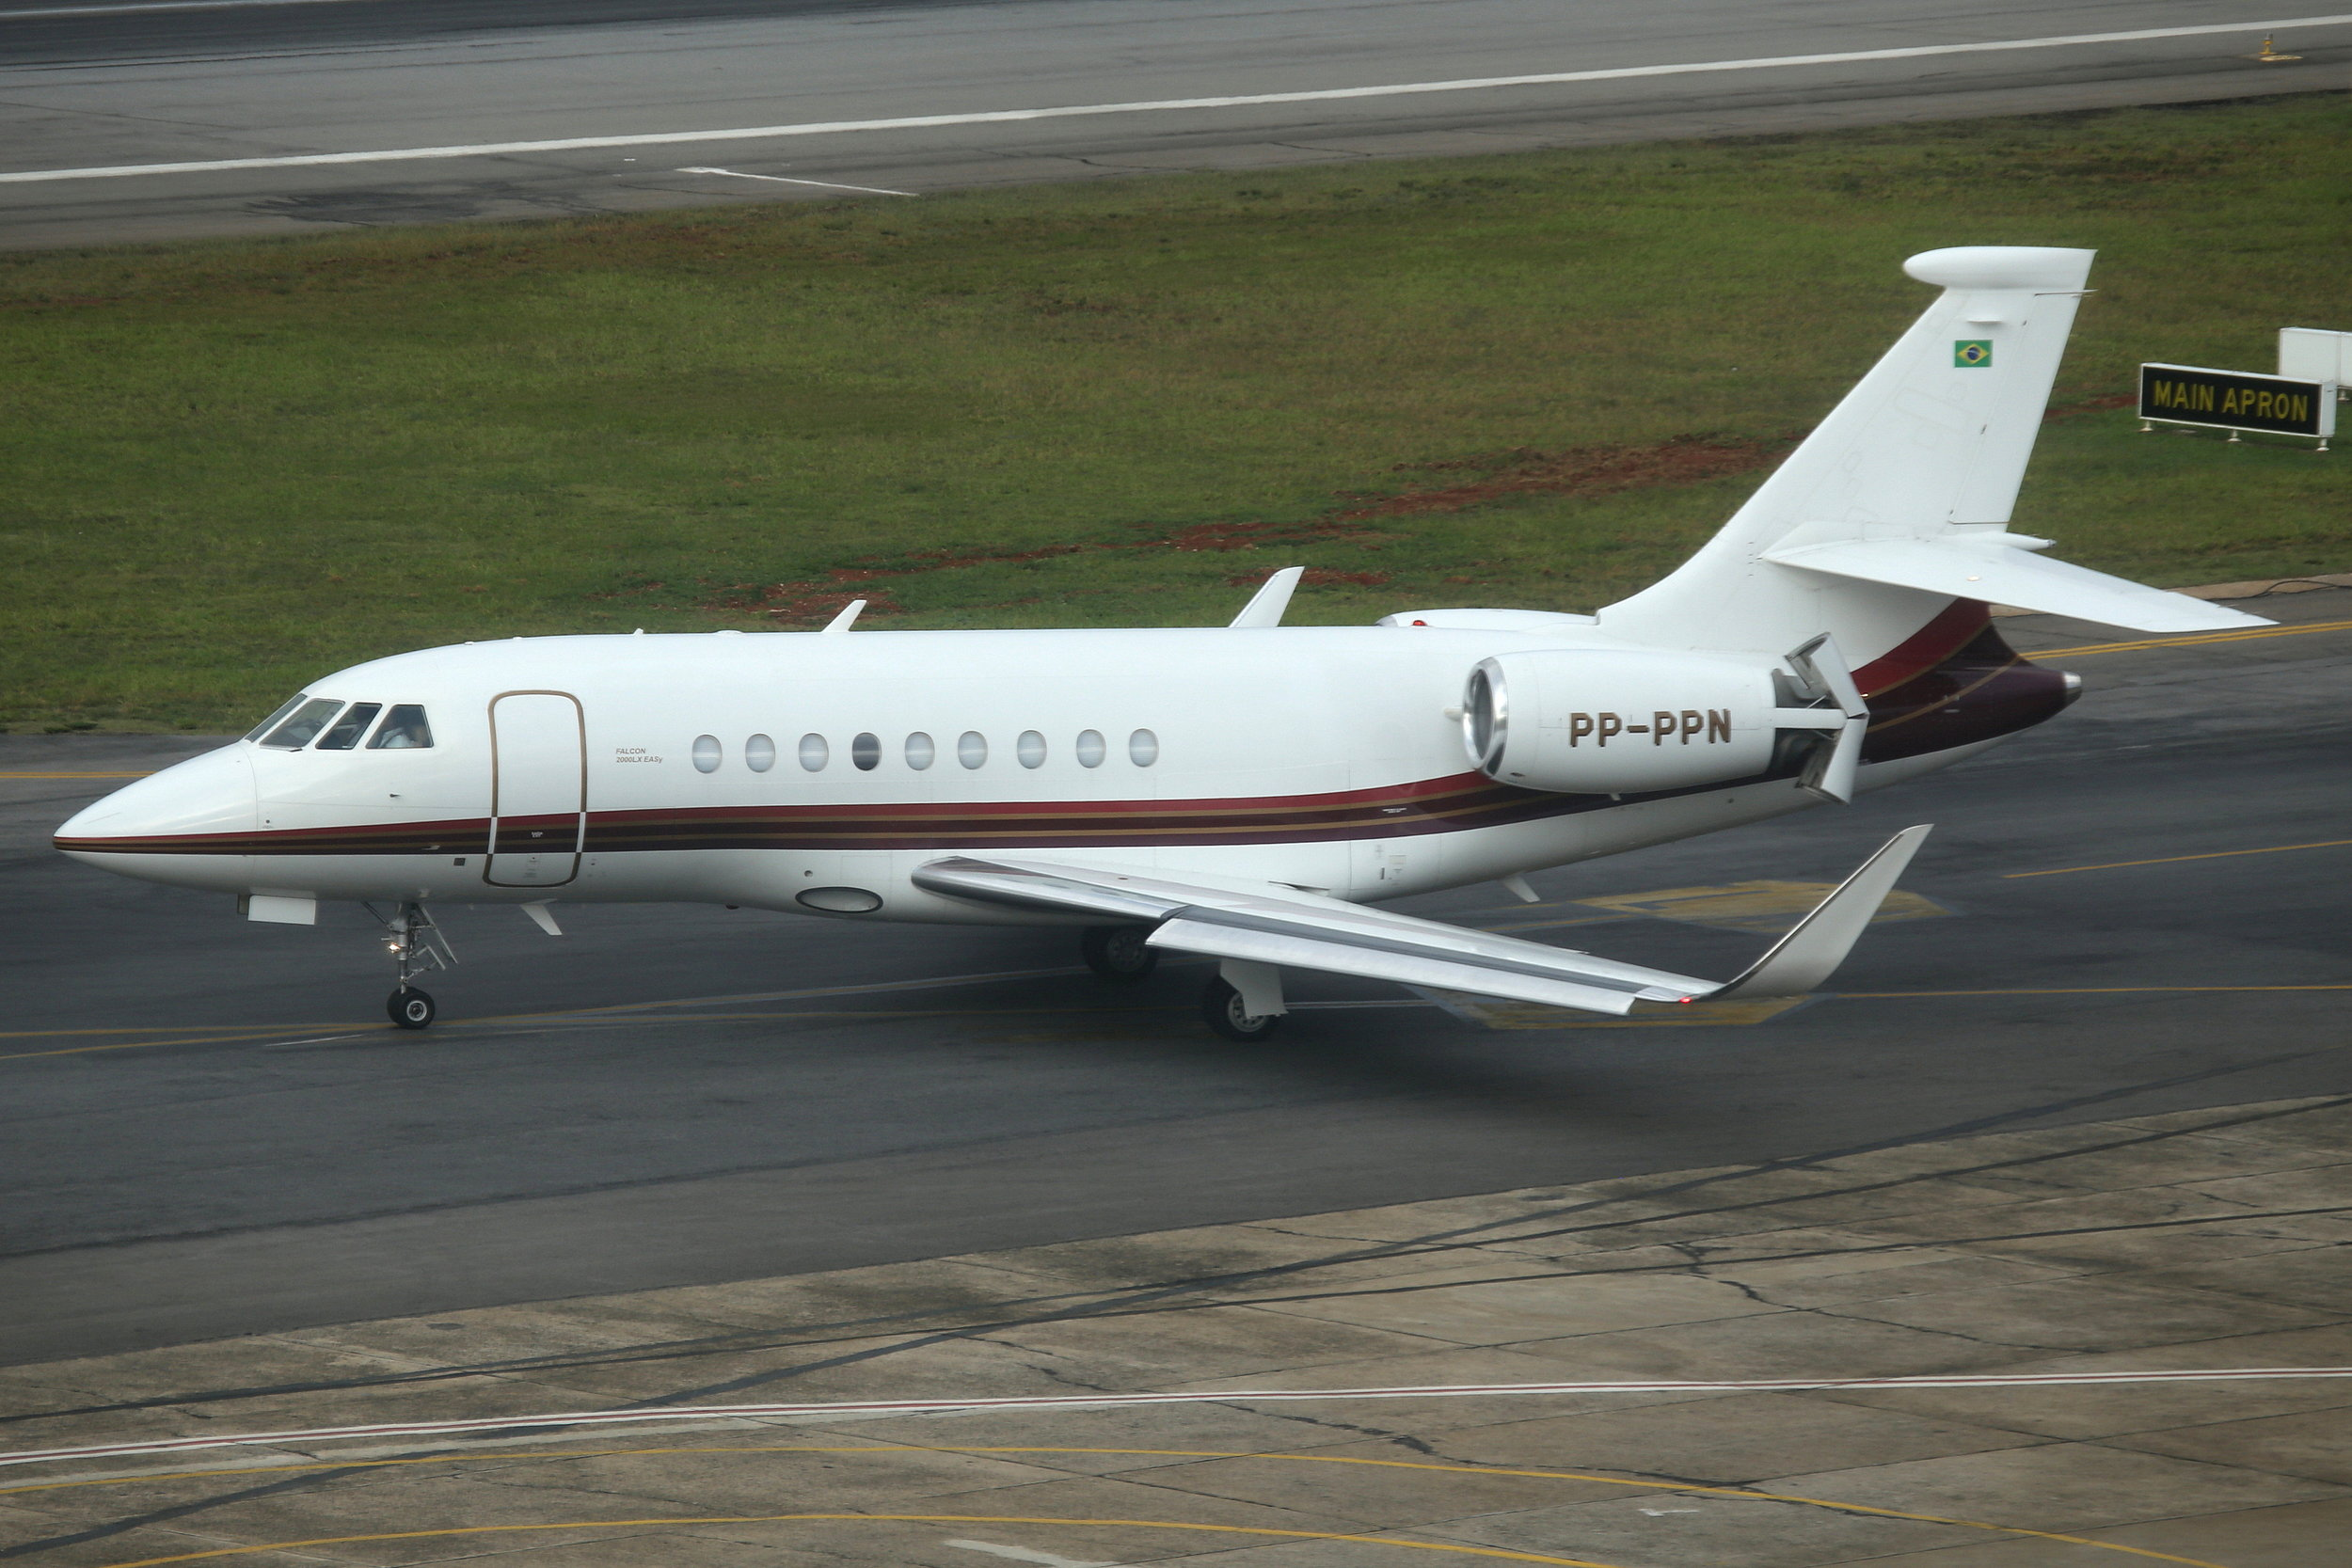 PP-PPN Dassault Falcon 2000LX taken from the Slaveiro Slim hotel at Sao Paulo Congonhas Airport 29th April 2019 by John Wood